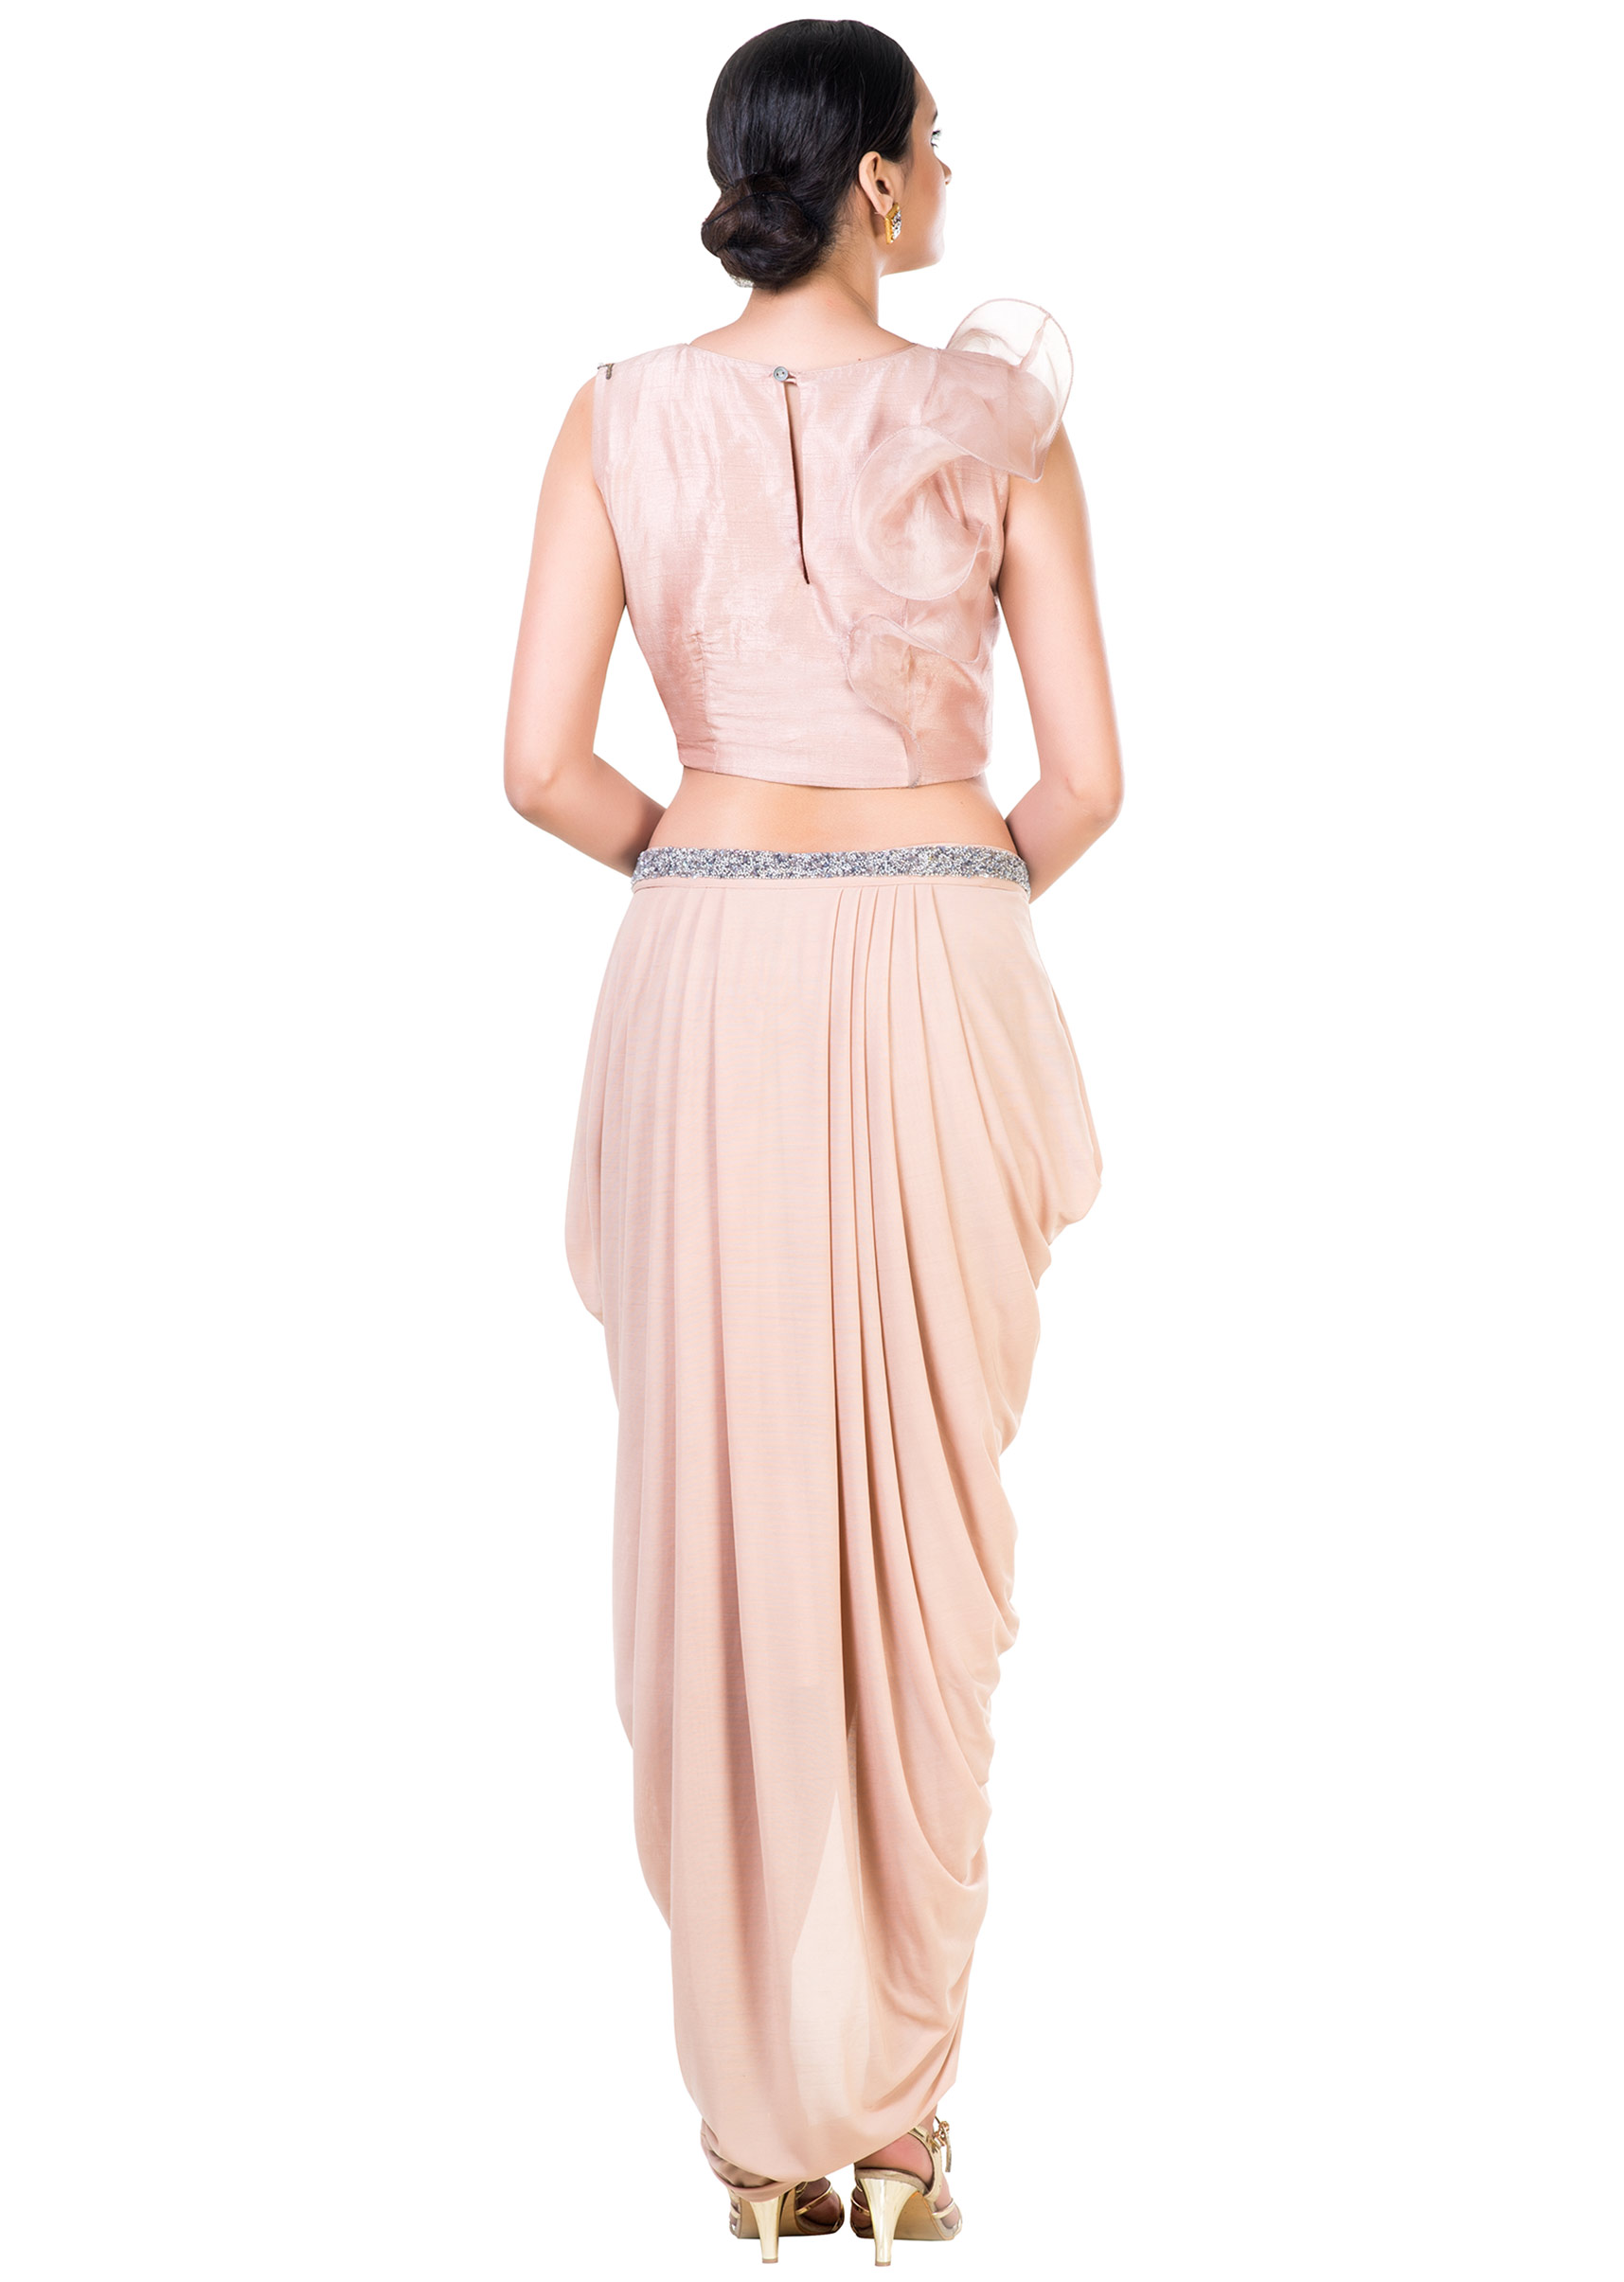 0bdb32d5954 Embroidered Light Brown Frill Crop Top and Draped Skirt Set